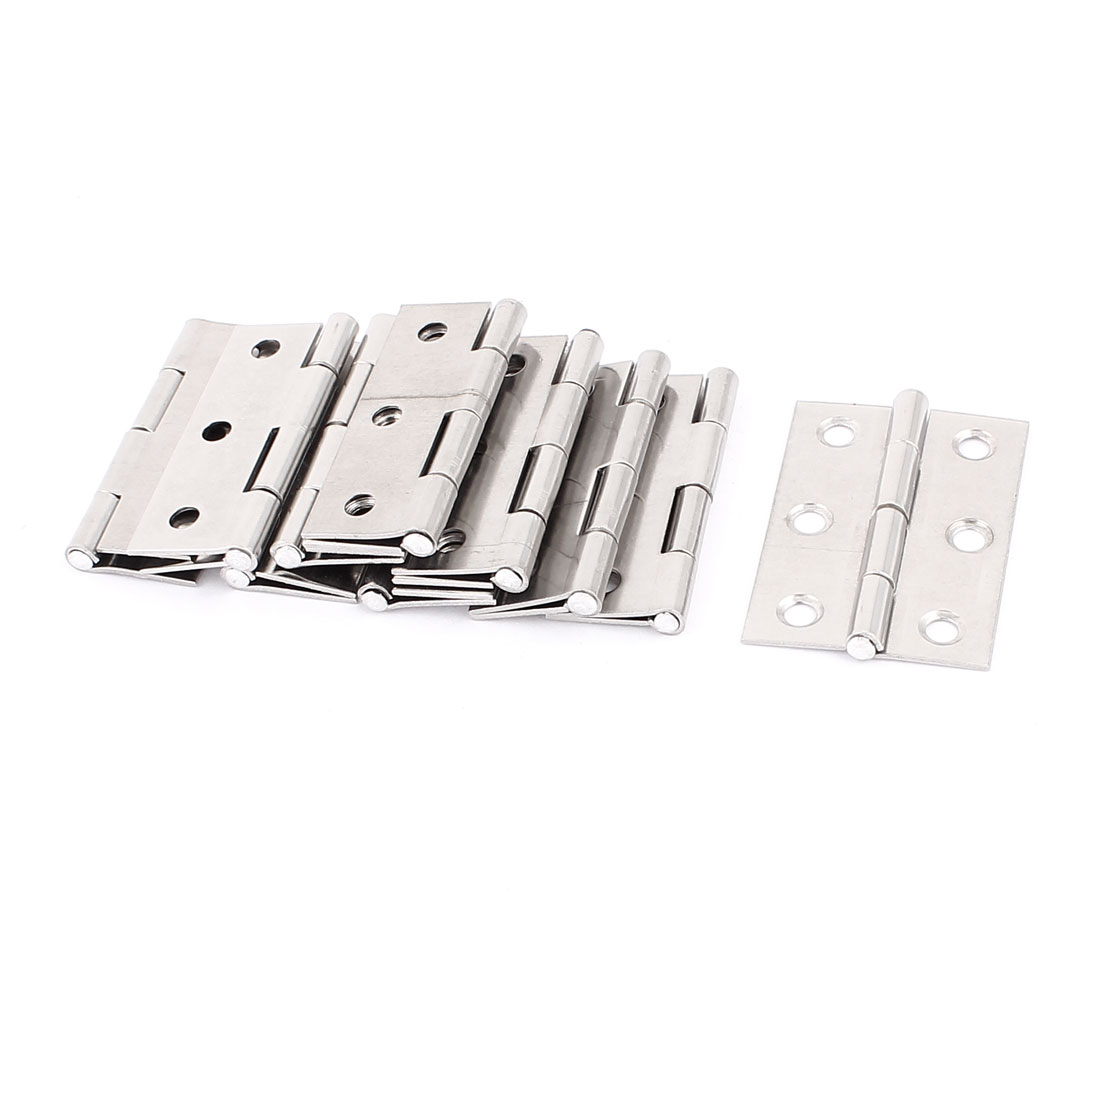 Furniture Cabinet Stainless Steel Foldable Rotating Door Hinges 10pcs